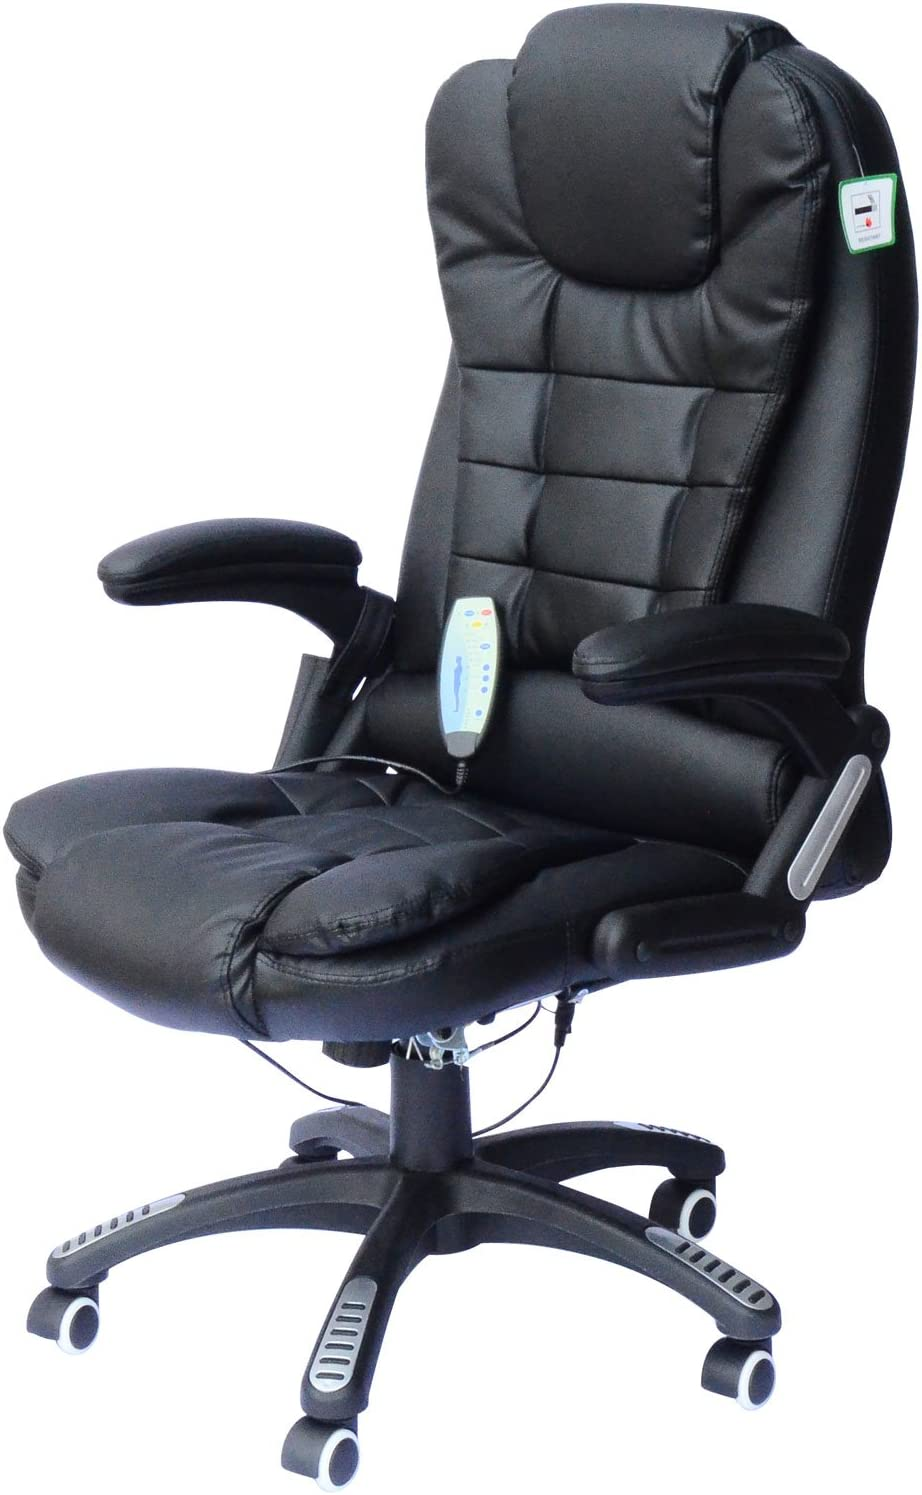 HomCom High-Back Executive Ergonomic PU Leather Heated Vibrating Massage Office Chair - Black